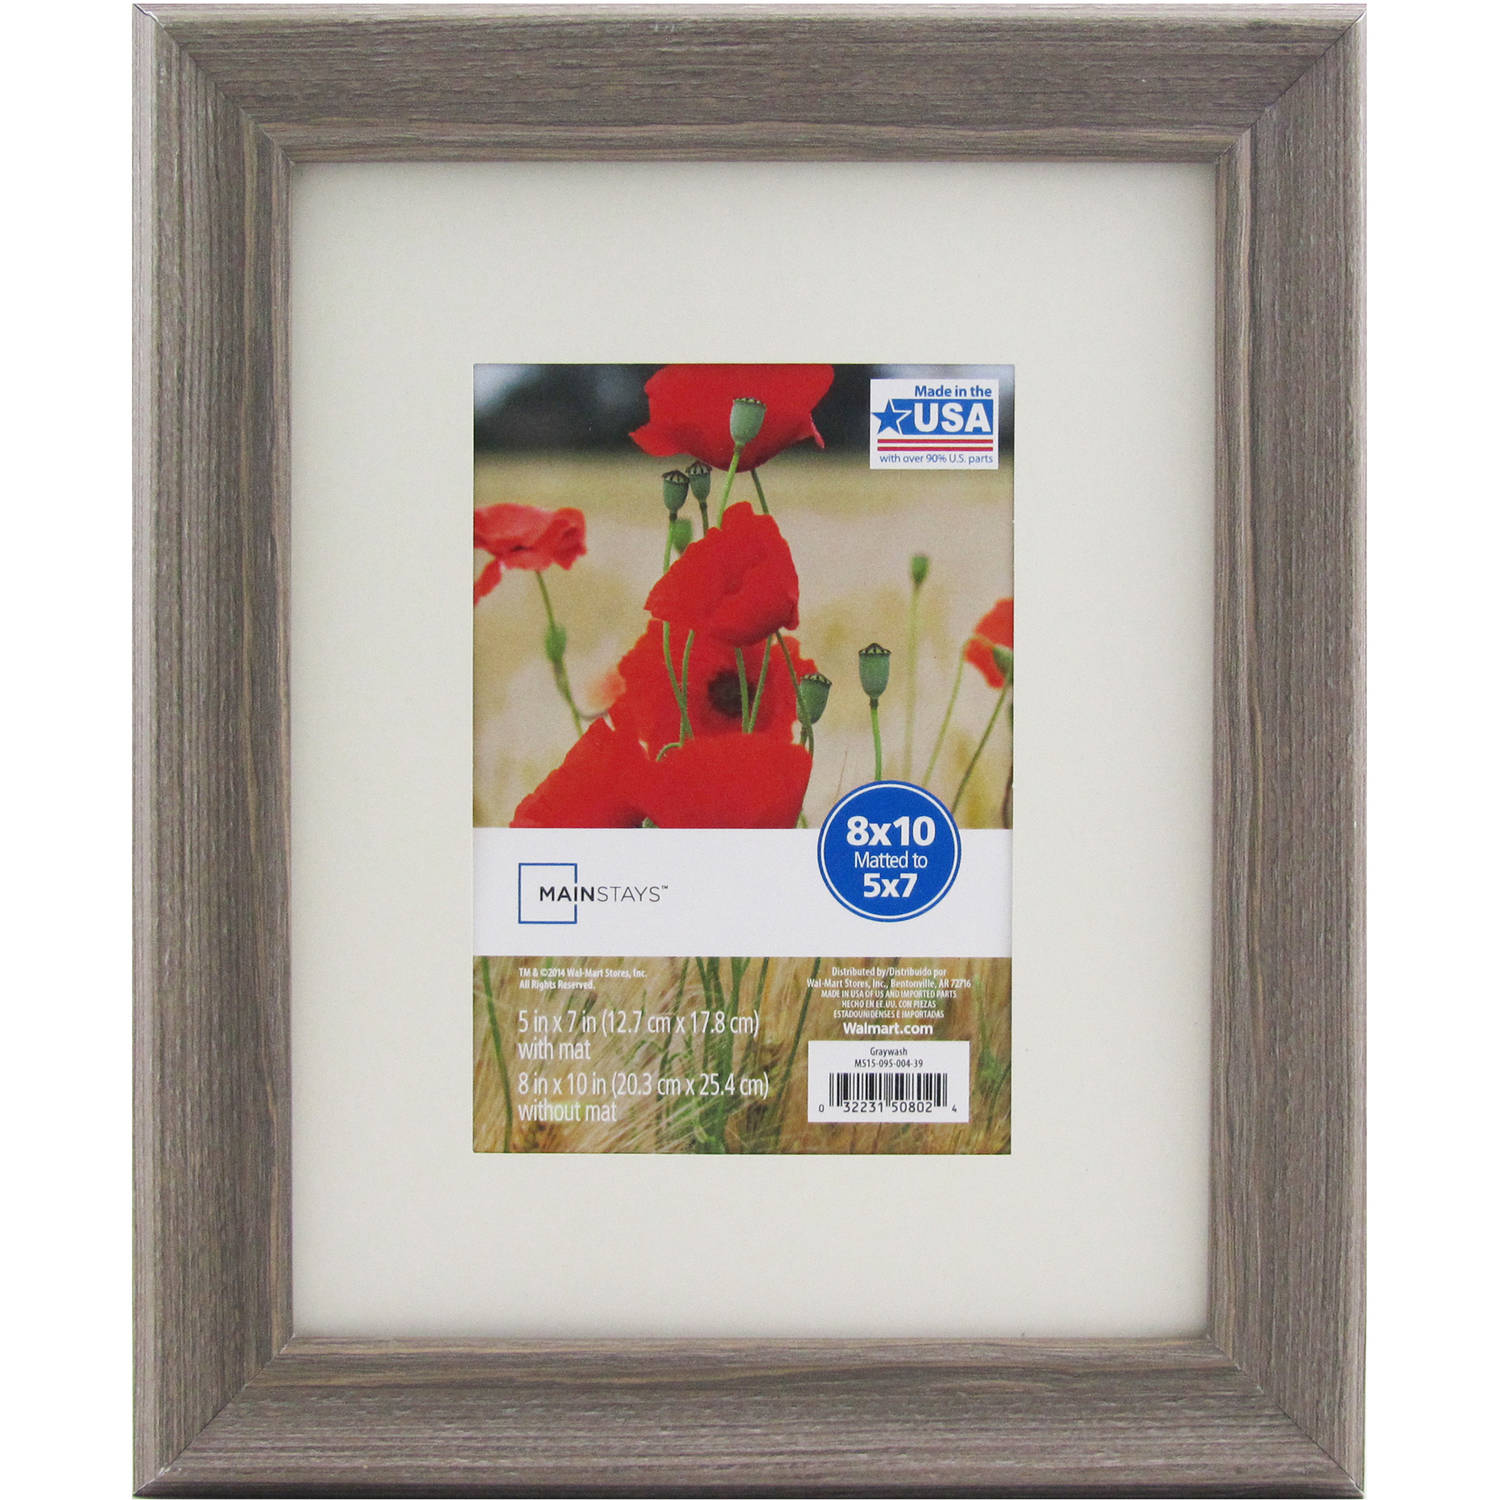 mainstays 8x10 matted to 5x7 graywash picture frame walmartcom